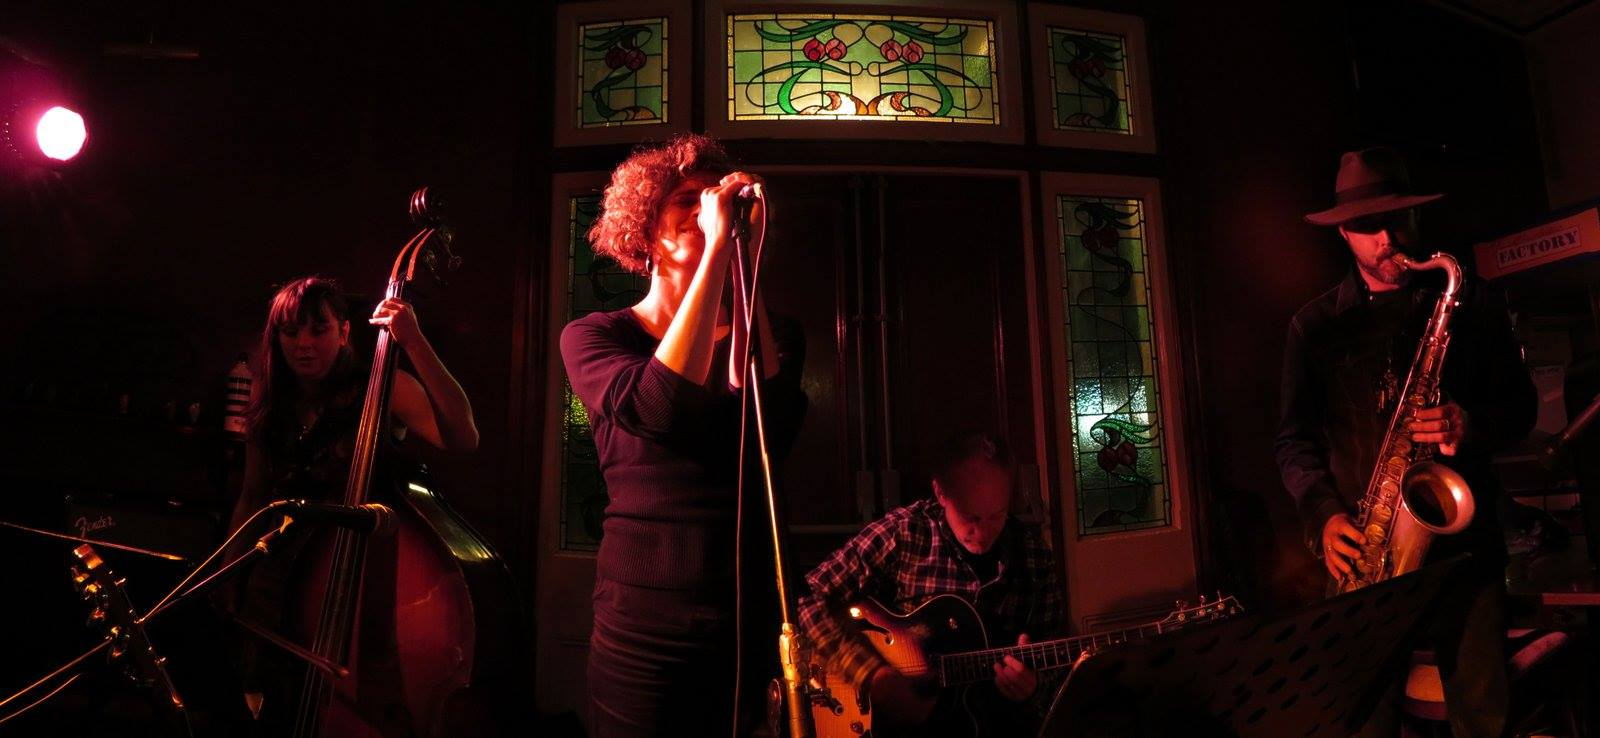 Soular Spill Spellbinding at Lawson Folk - blog post image